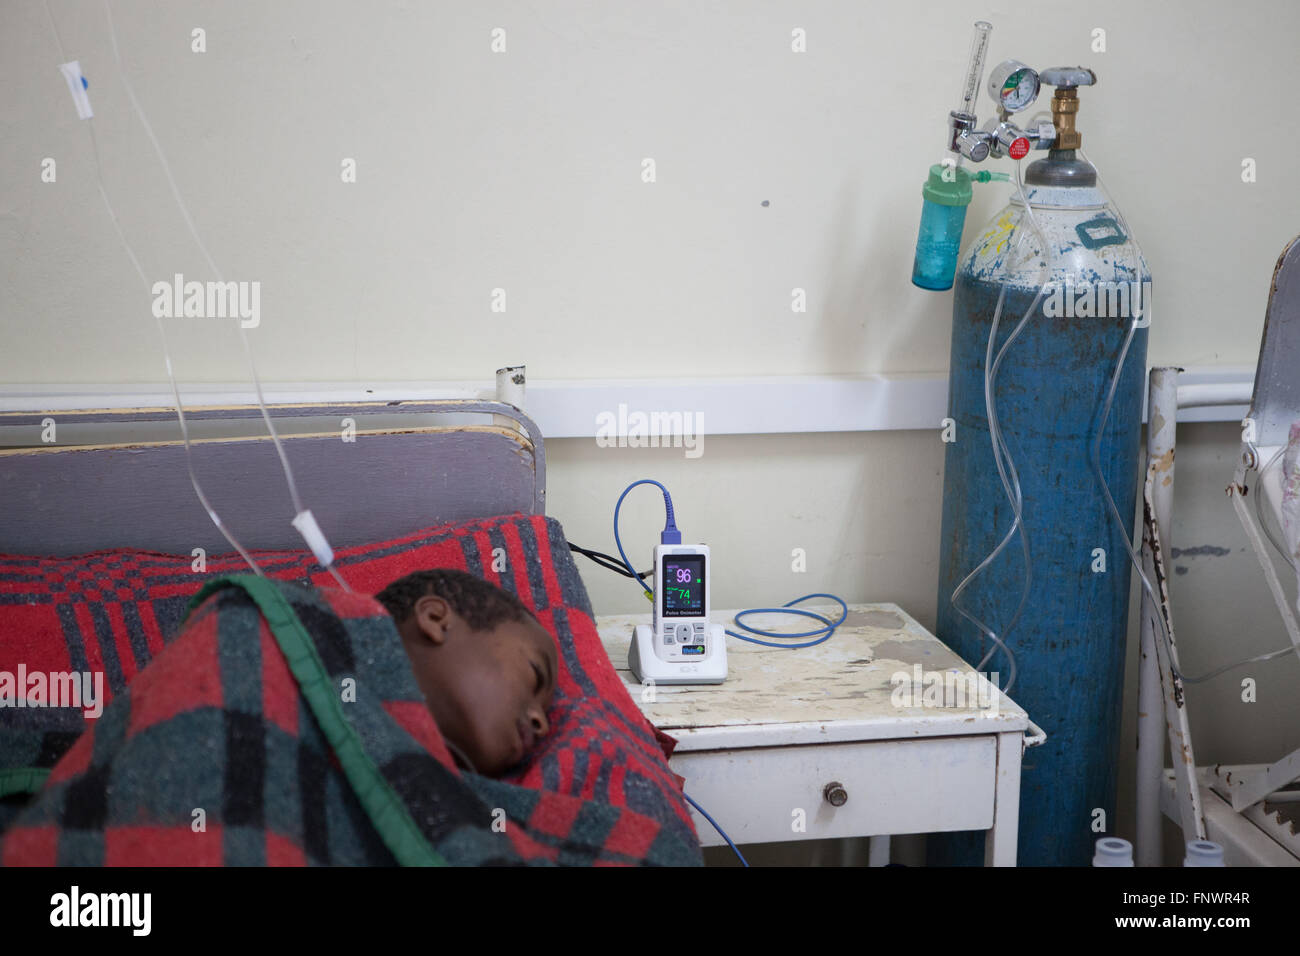 A young boy being monitored by a lifebox in  the Intensive-care unit, Addis Ababa, Ethiopia. - Stock Image